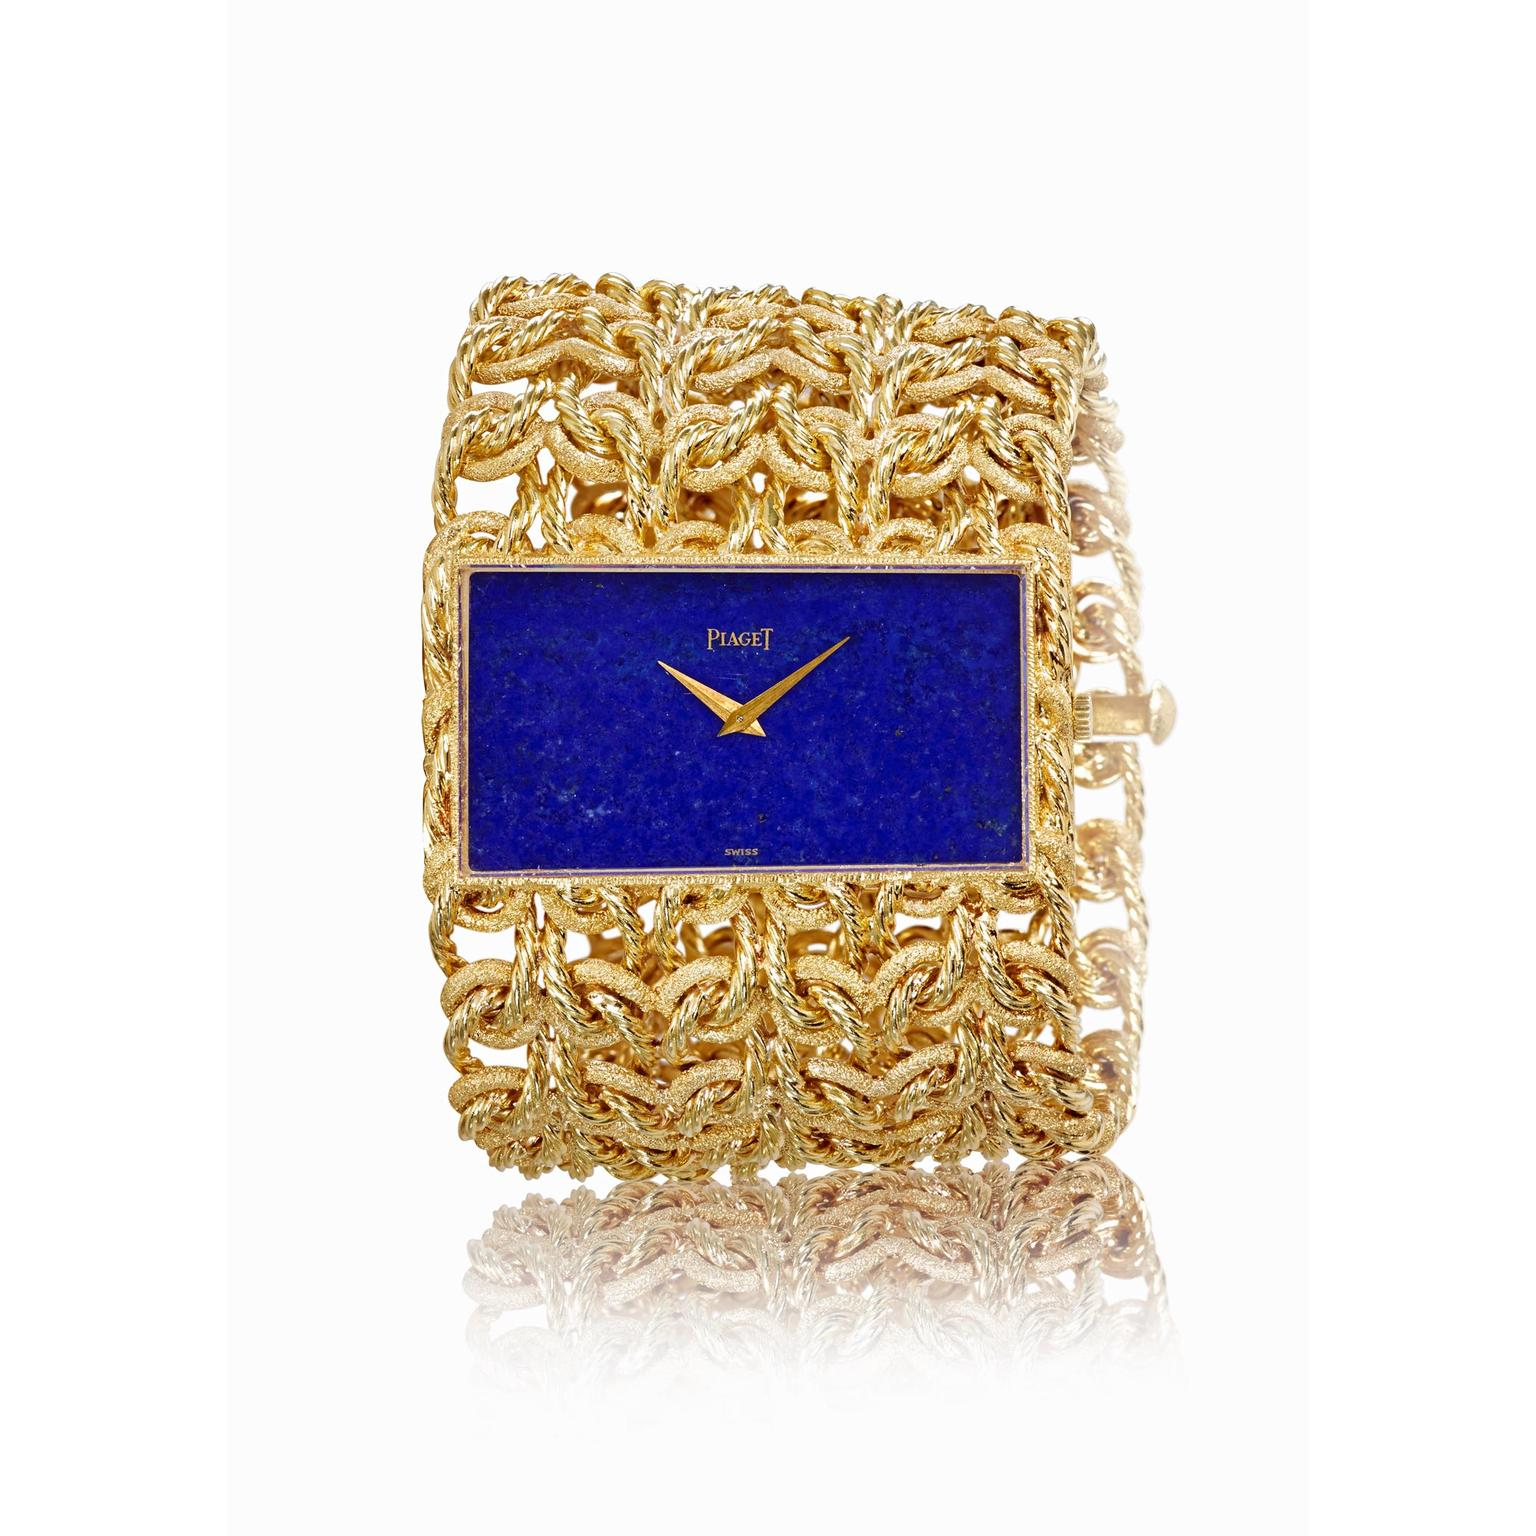 Piaget vintage cuff watch in yellow gold with a lapis lazuli dial